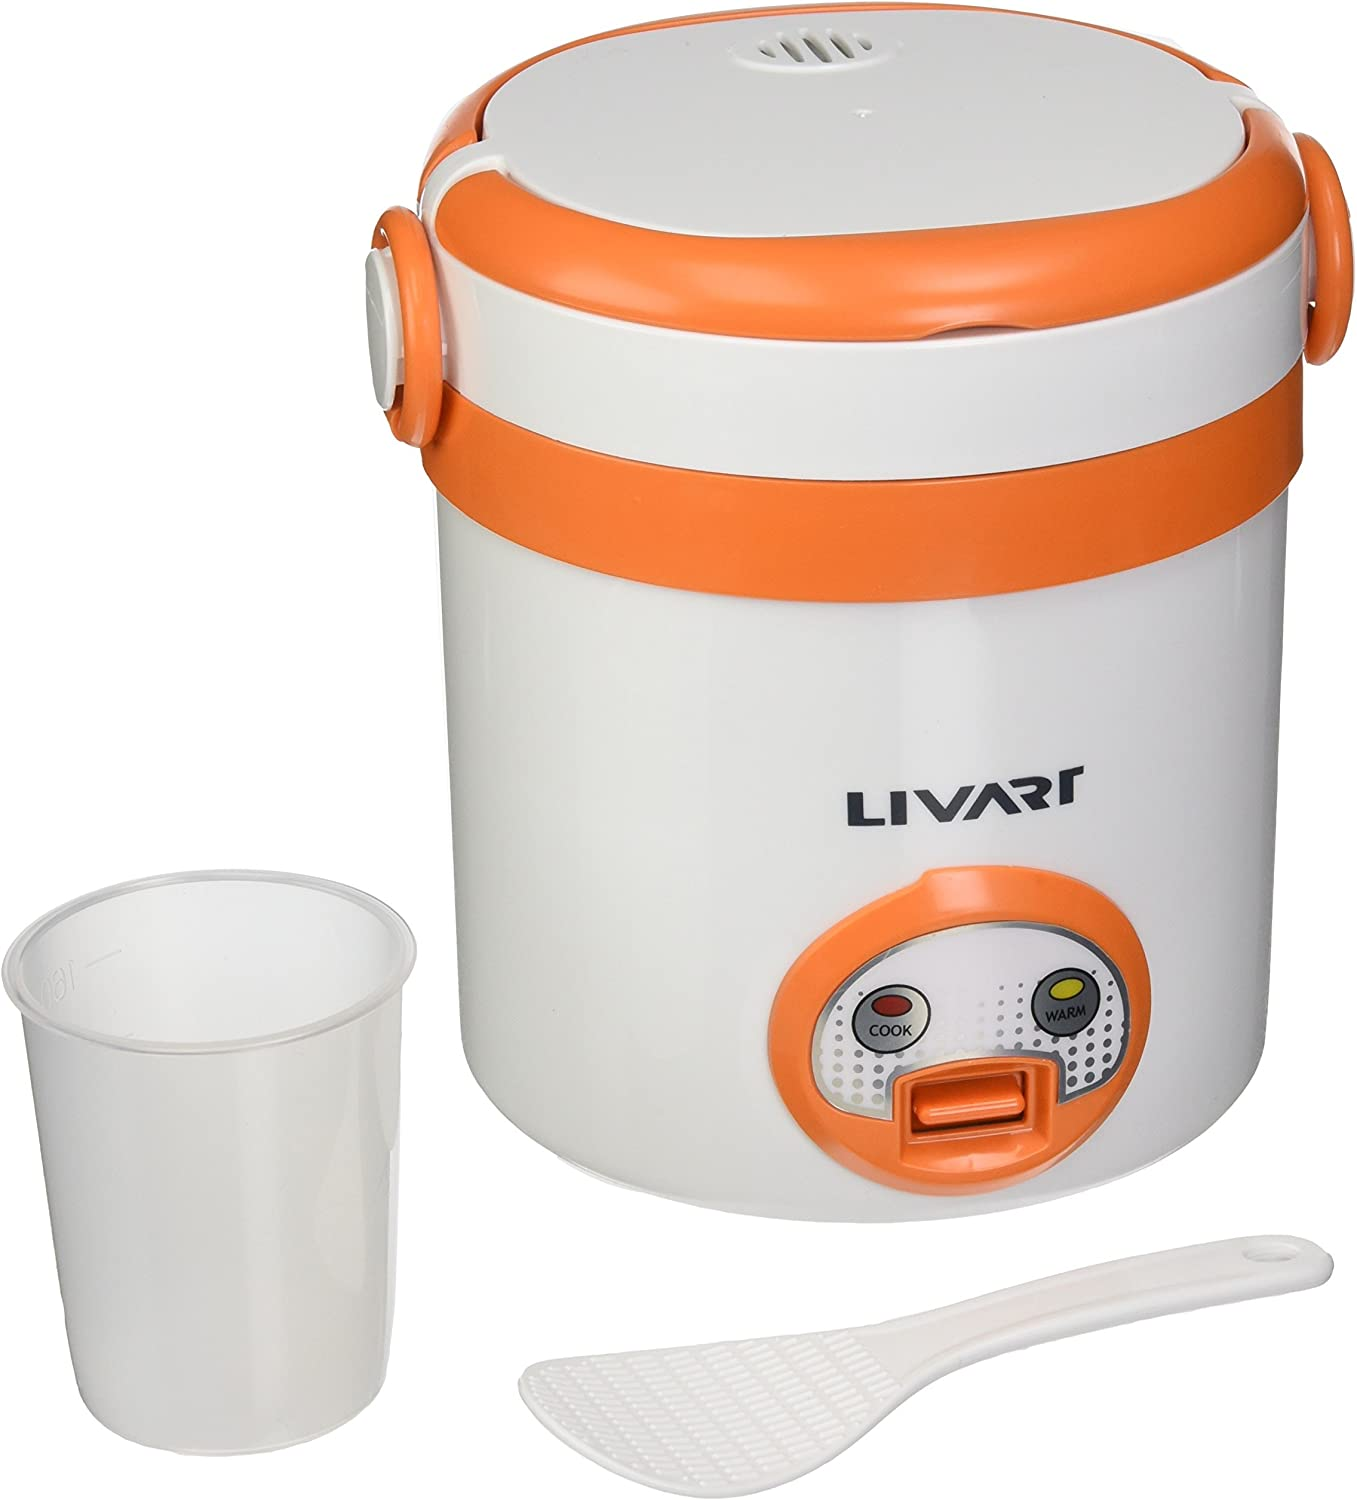 Livart Rice Cooker/Warmer 1 Cup L-001